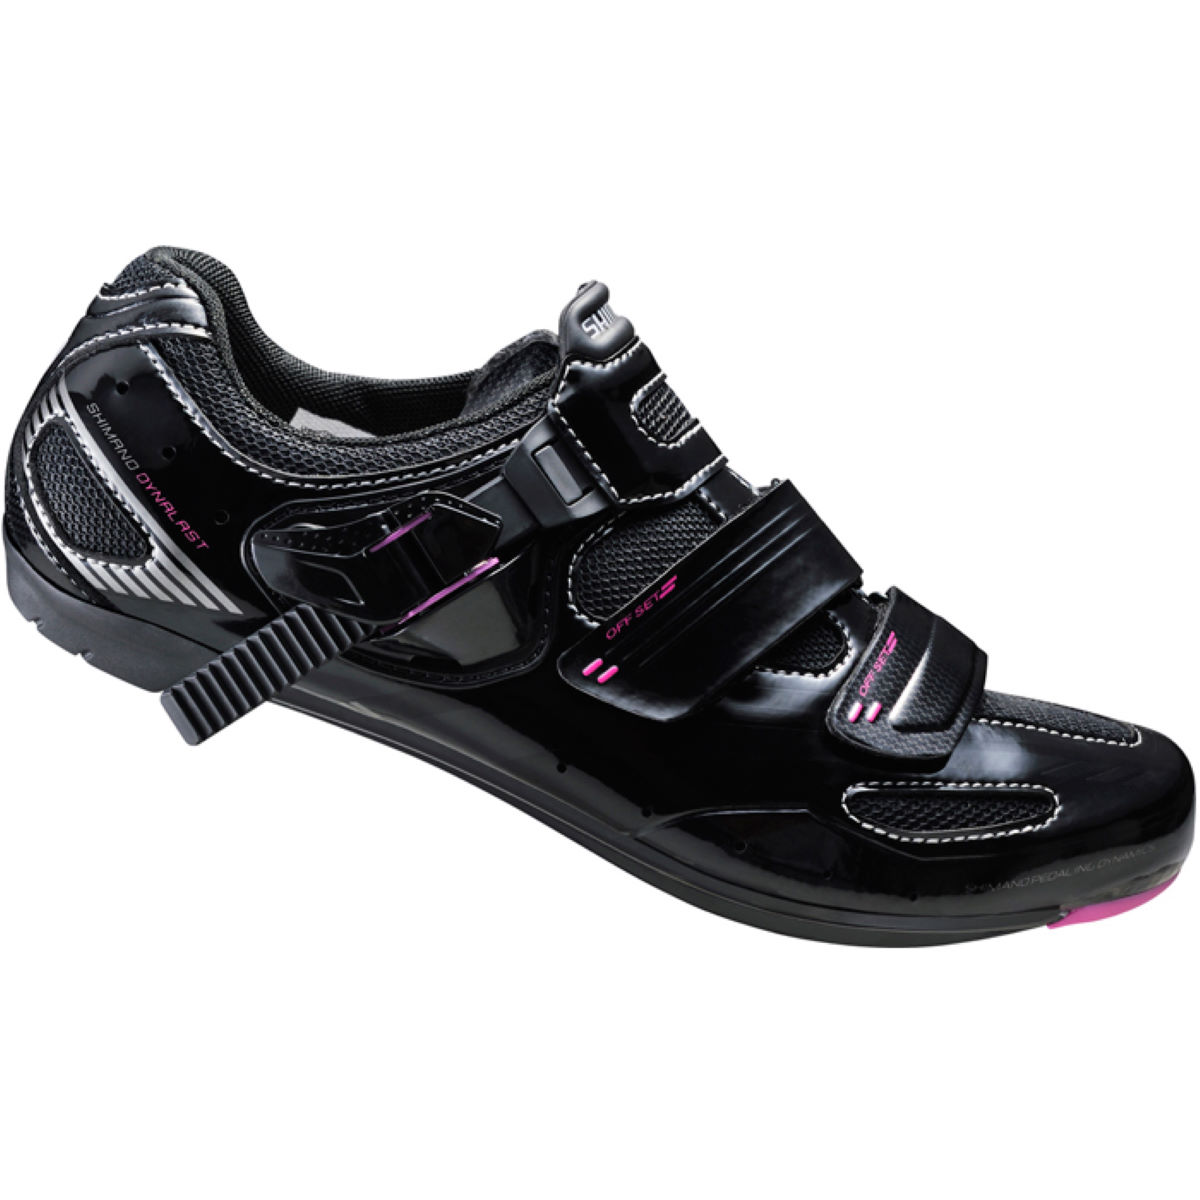 Creative SiDi Women39s T4 Air Carbon Triathlon Cycling Shoes